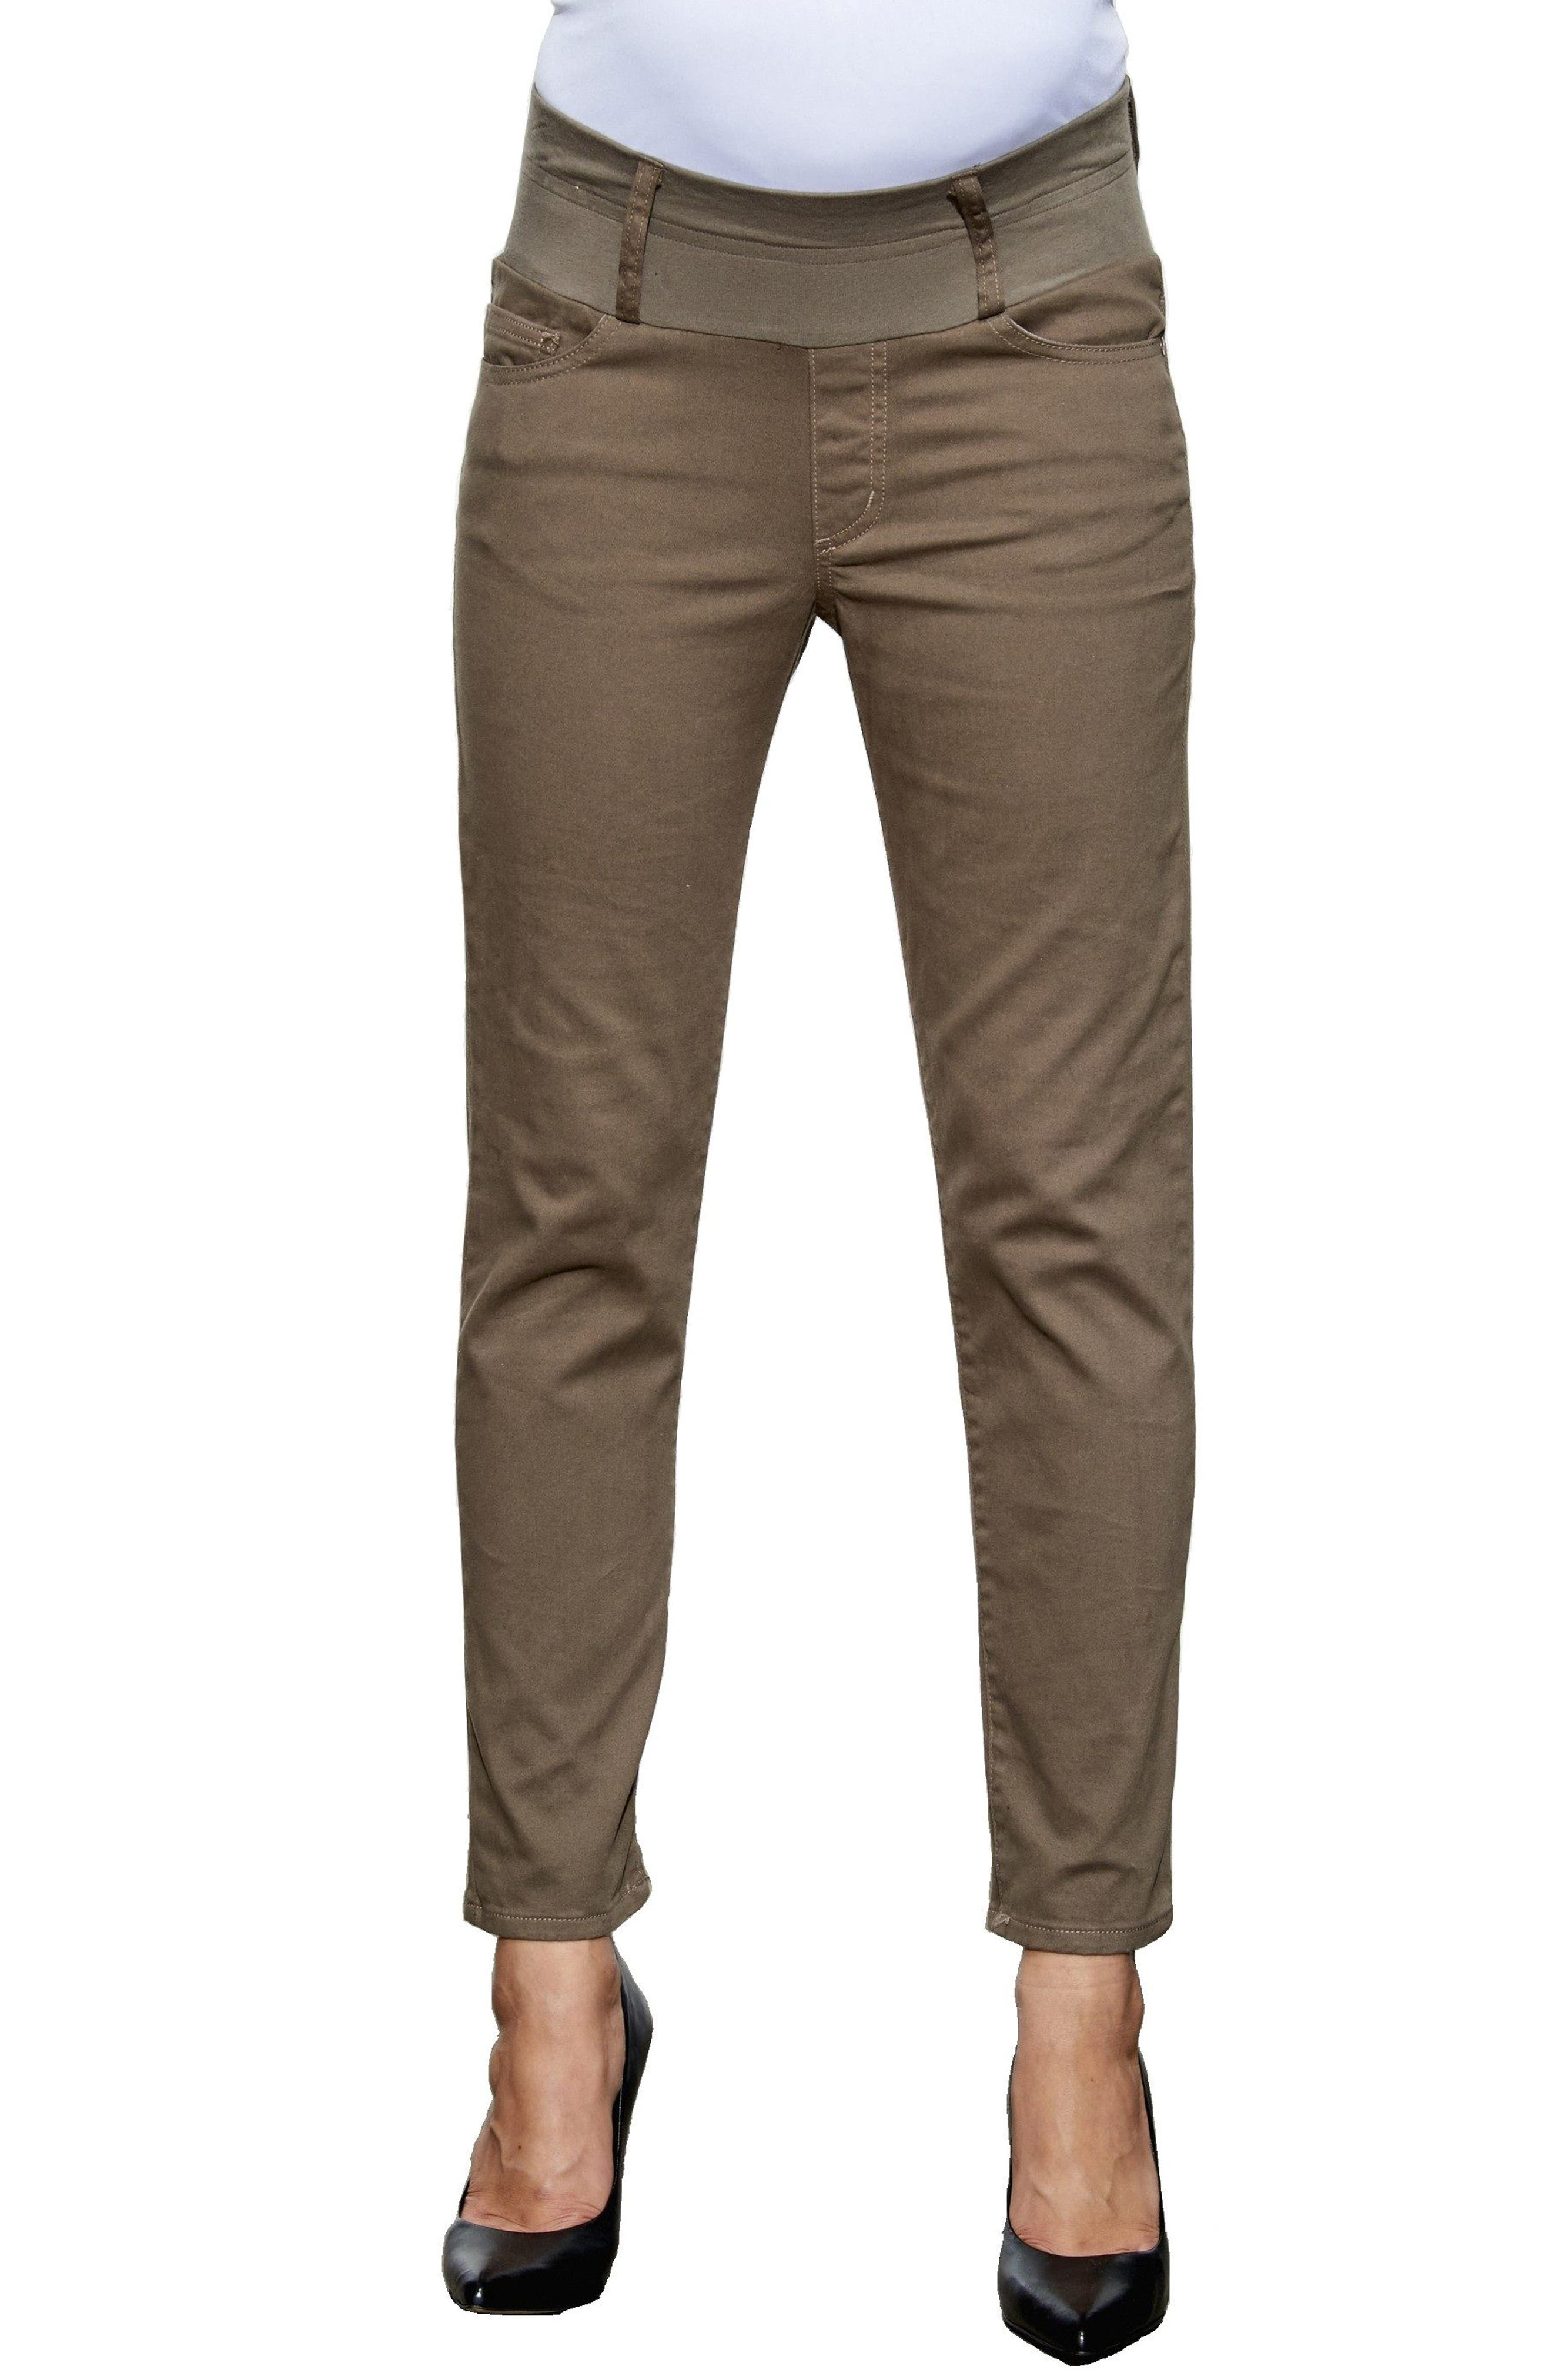 MATERNAL AMERICA, Maternity Skinny Ankle Stretch Jeans, Main thumbnail 1, color, TAUPE